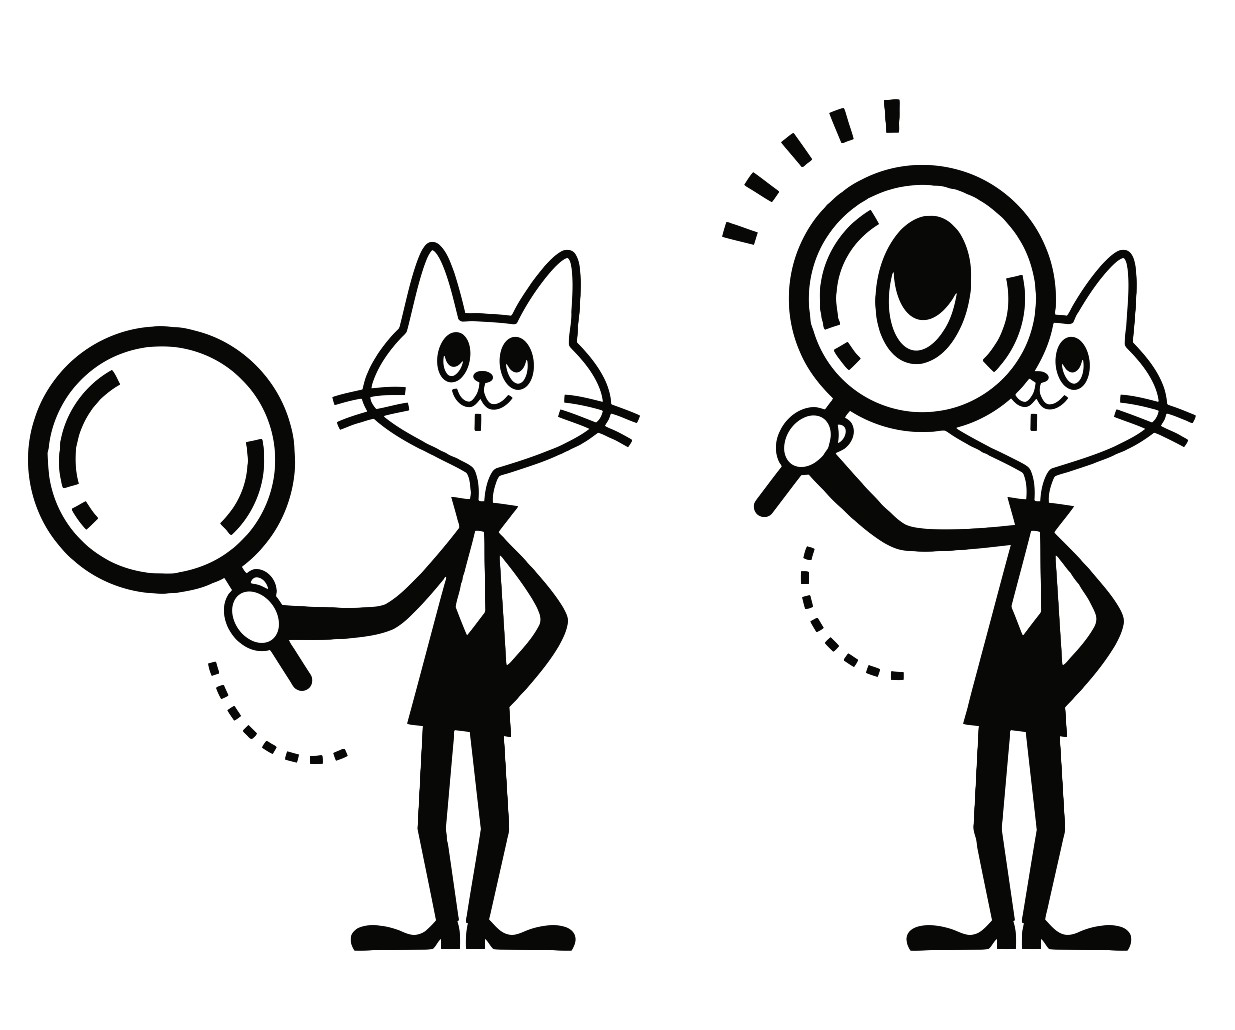 1235x1030 Business Cat Searching For Something With A Magnifying Glass